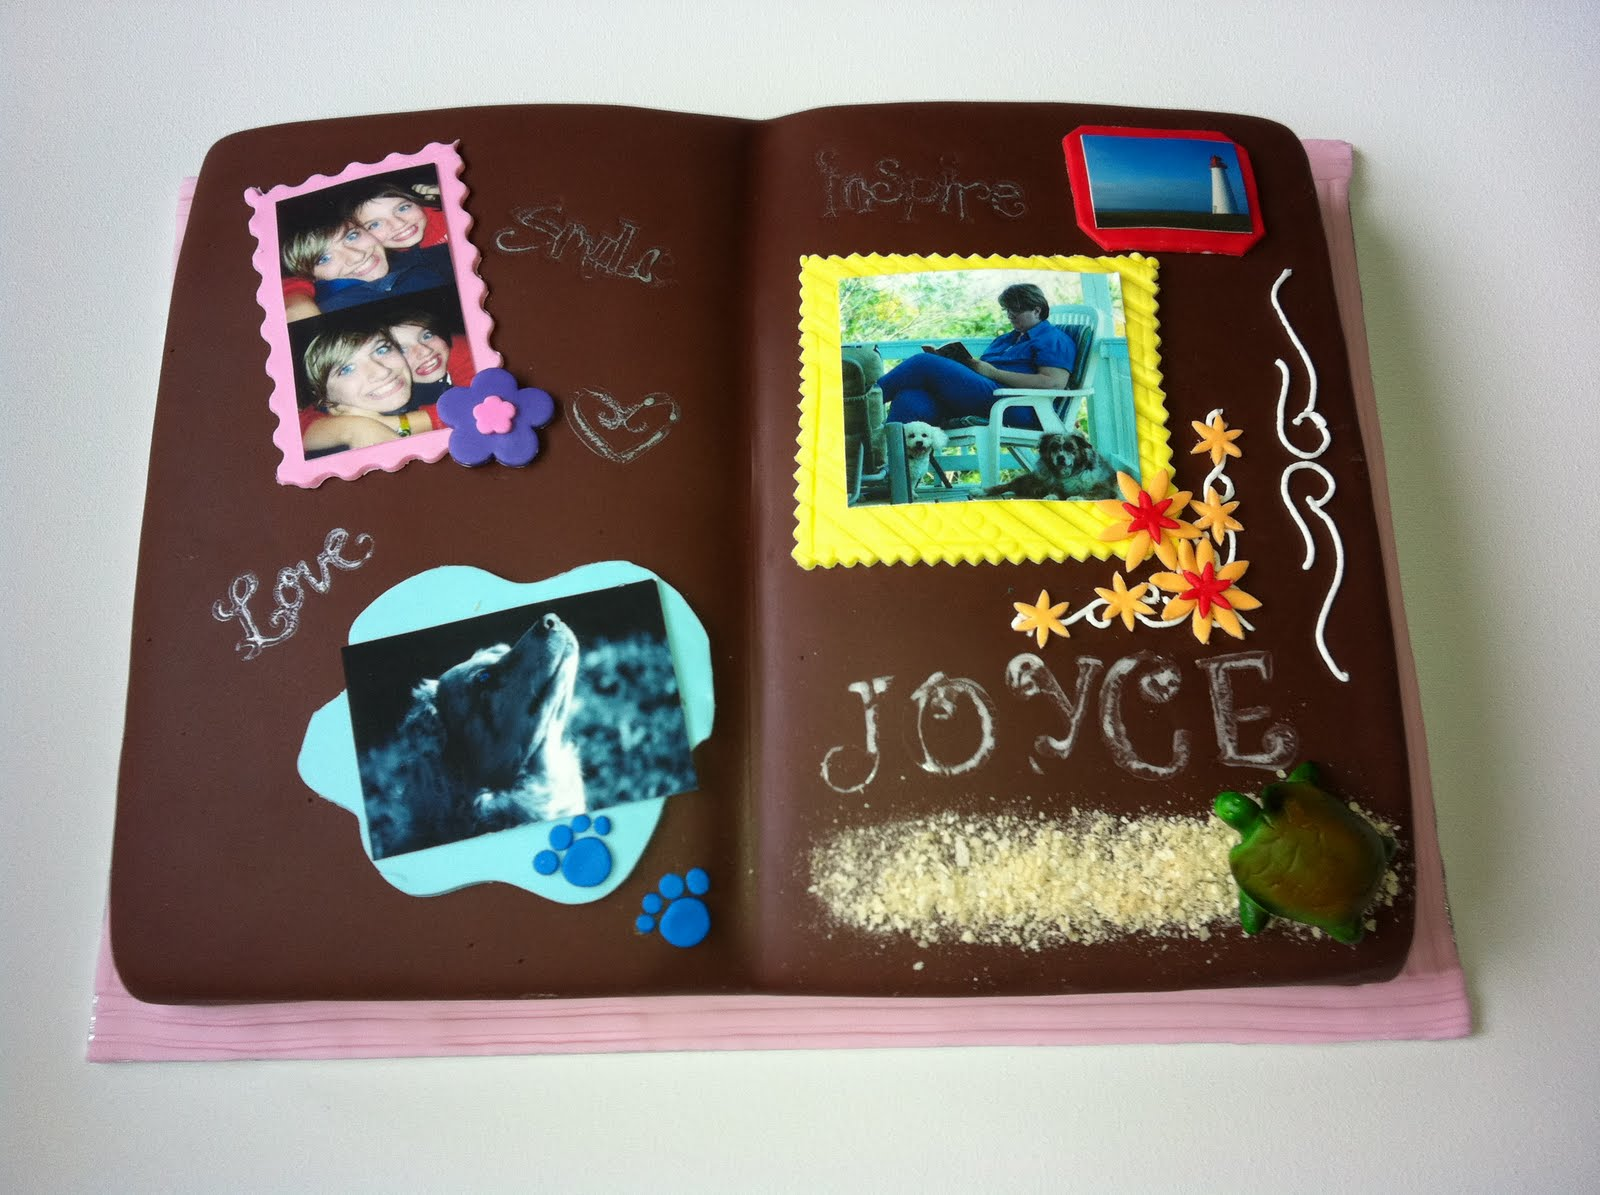 Jocelyn S Wedding Cakes And More Scrapbook Cake